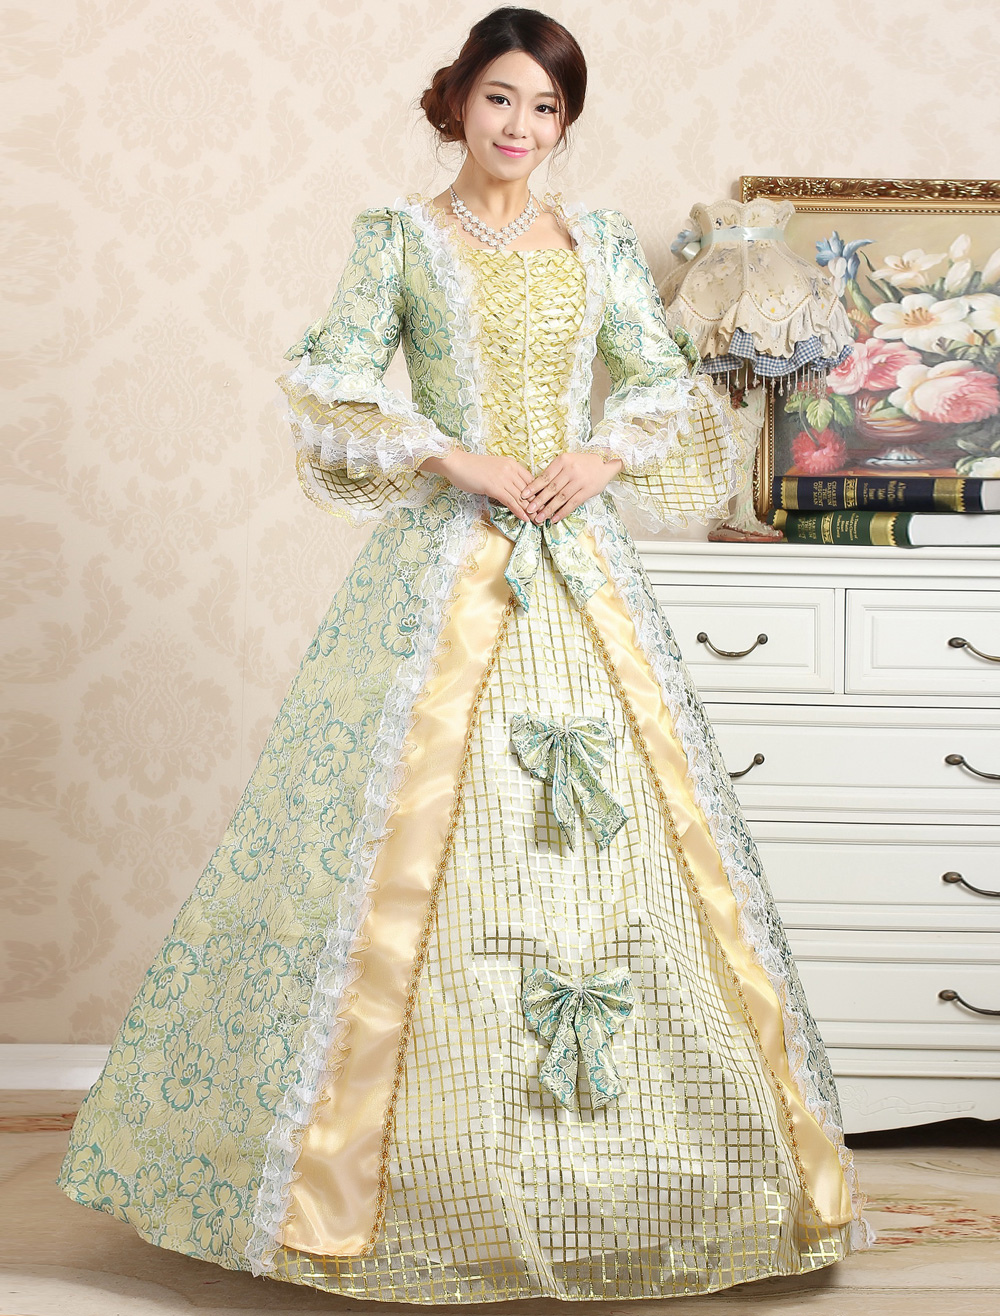 Buy Royal Retro Costume Women's Victorian Ball Gown Jacquard Floral Green Ruffle Bows Tiered Vintage Princess Costume Halloween for $73.99 in Milanoo store